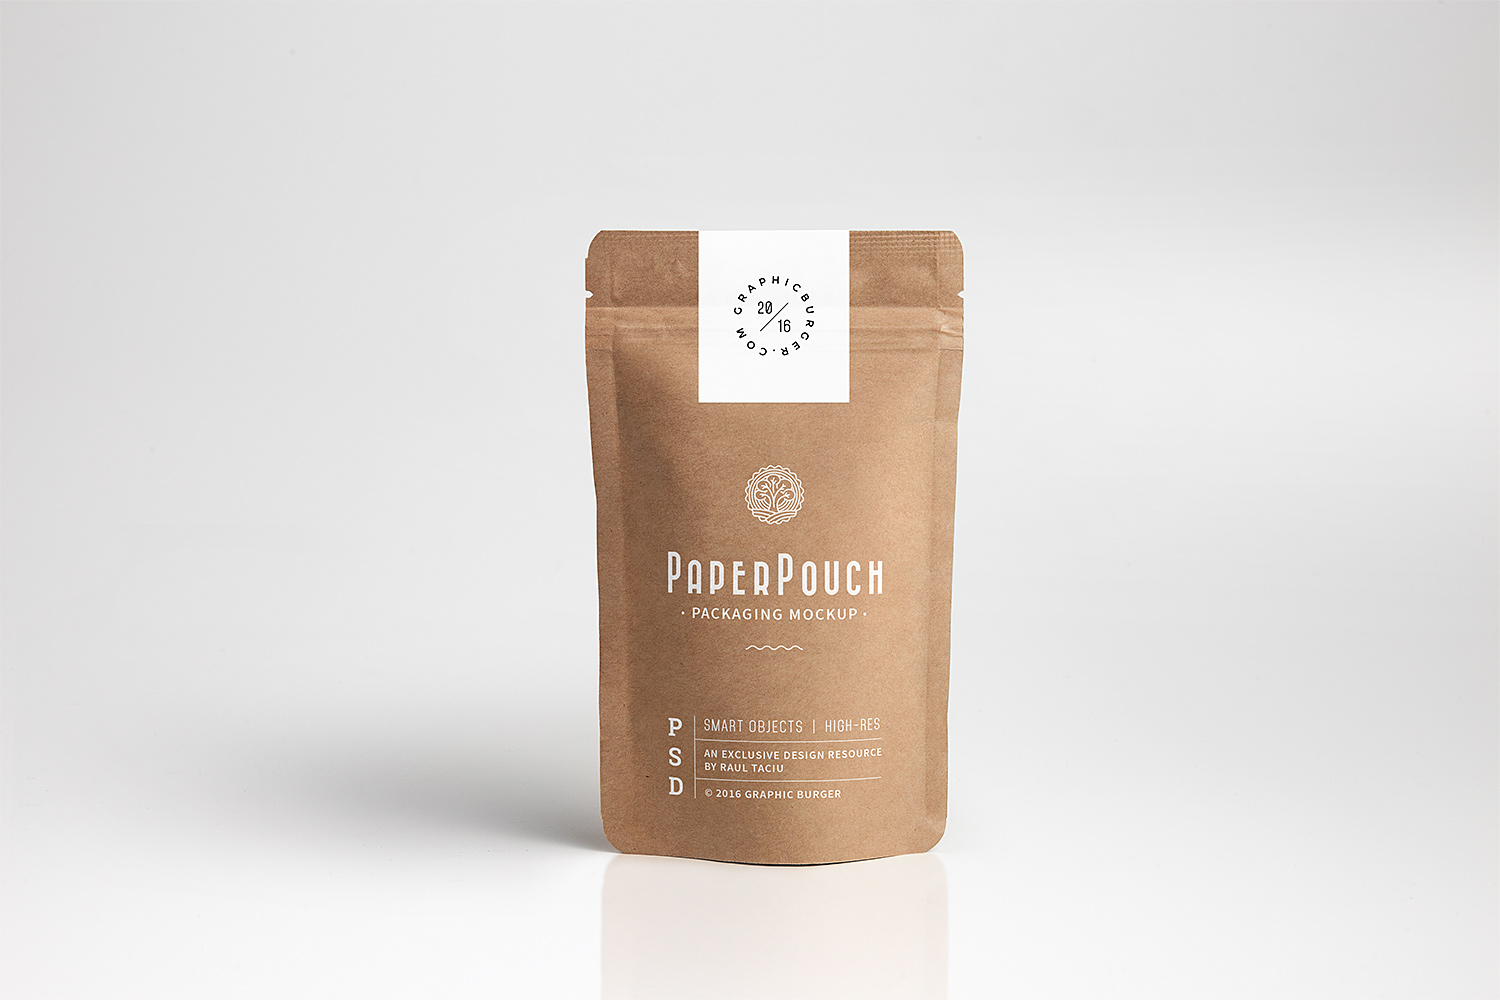 Paper Pouch Packaging Mockup